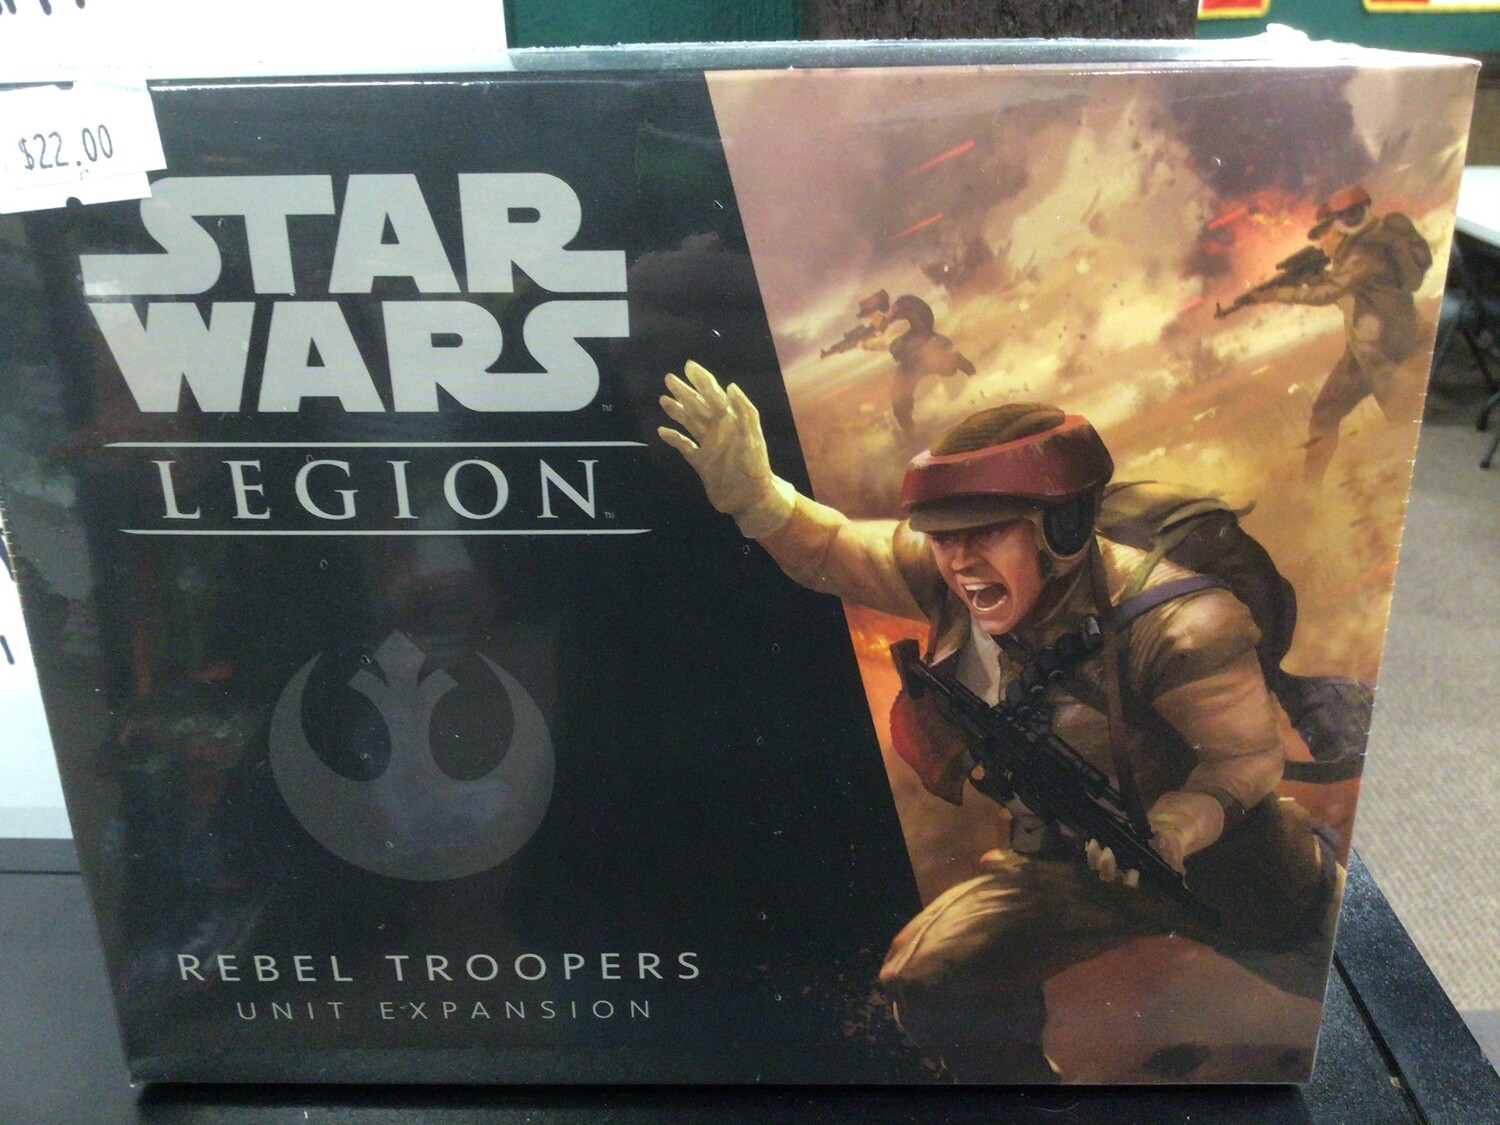 Rebel Troopers expansion